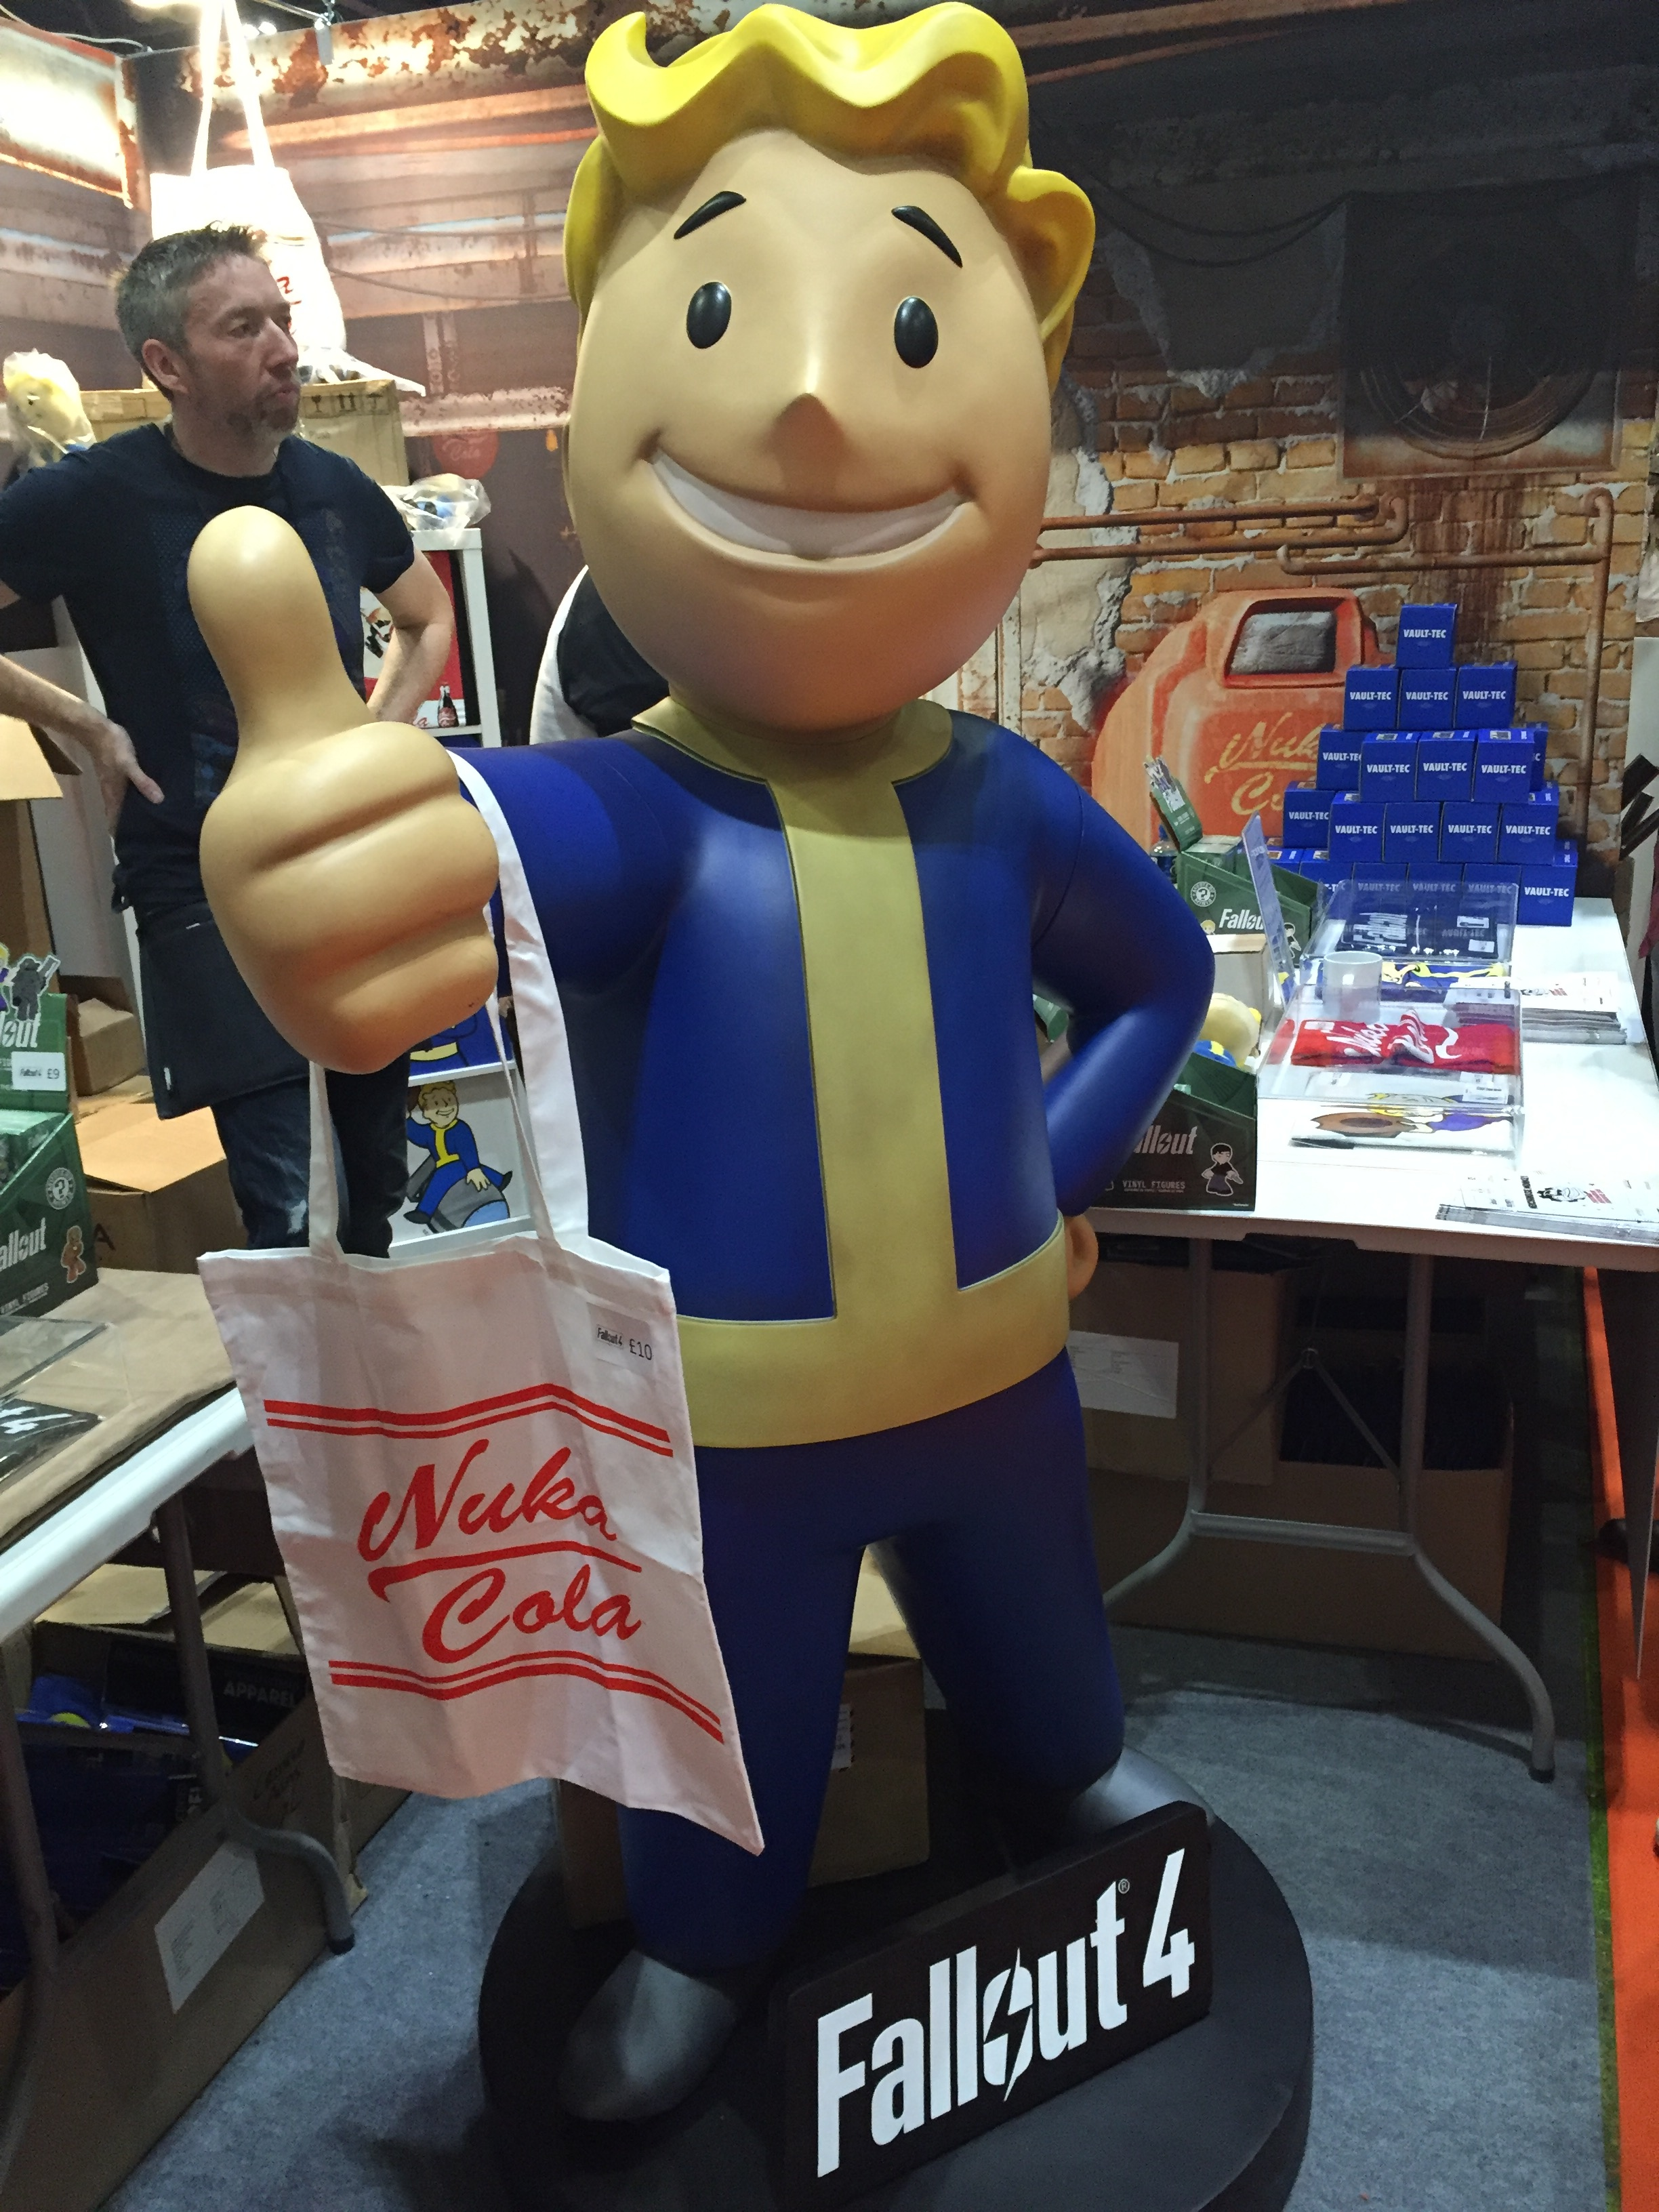 Good old Vault Boy with a bag full of Nuka Cola